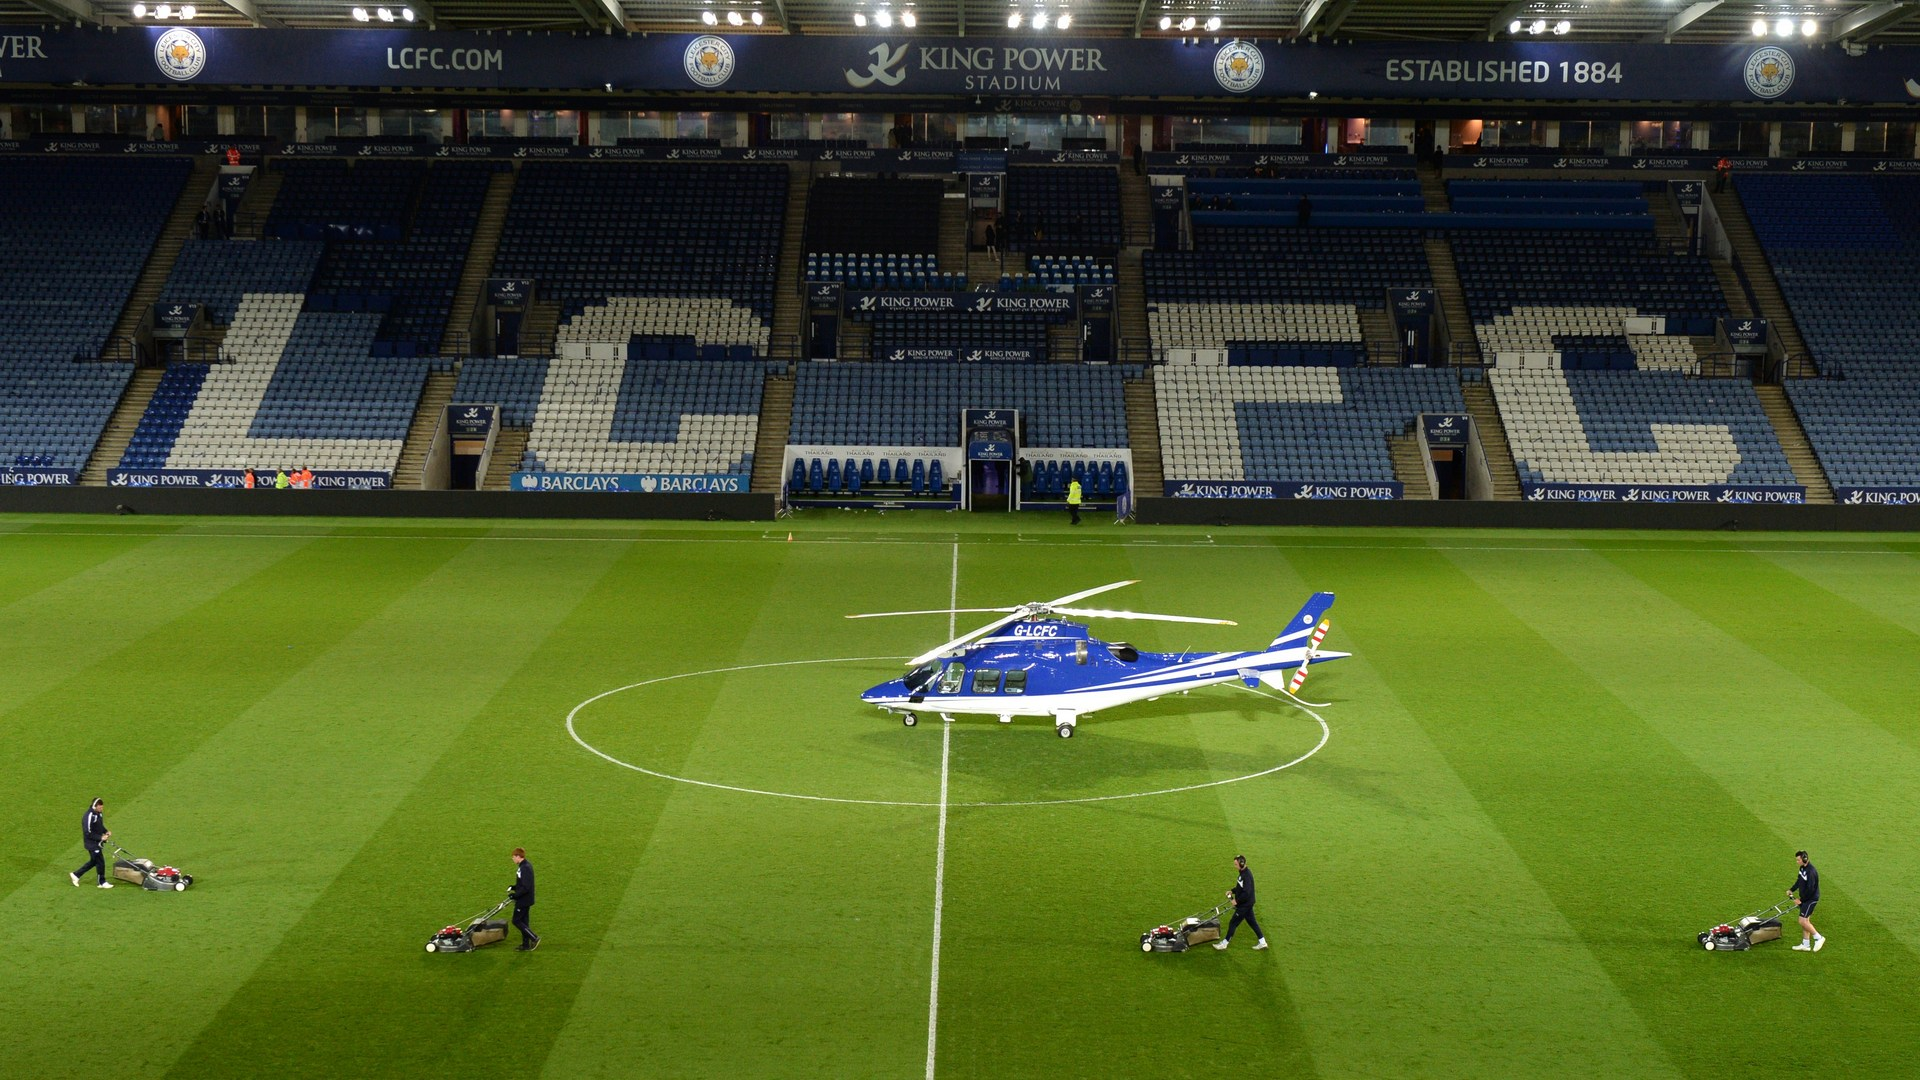 Leicester City owner's chopper crashes outside stadium